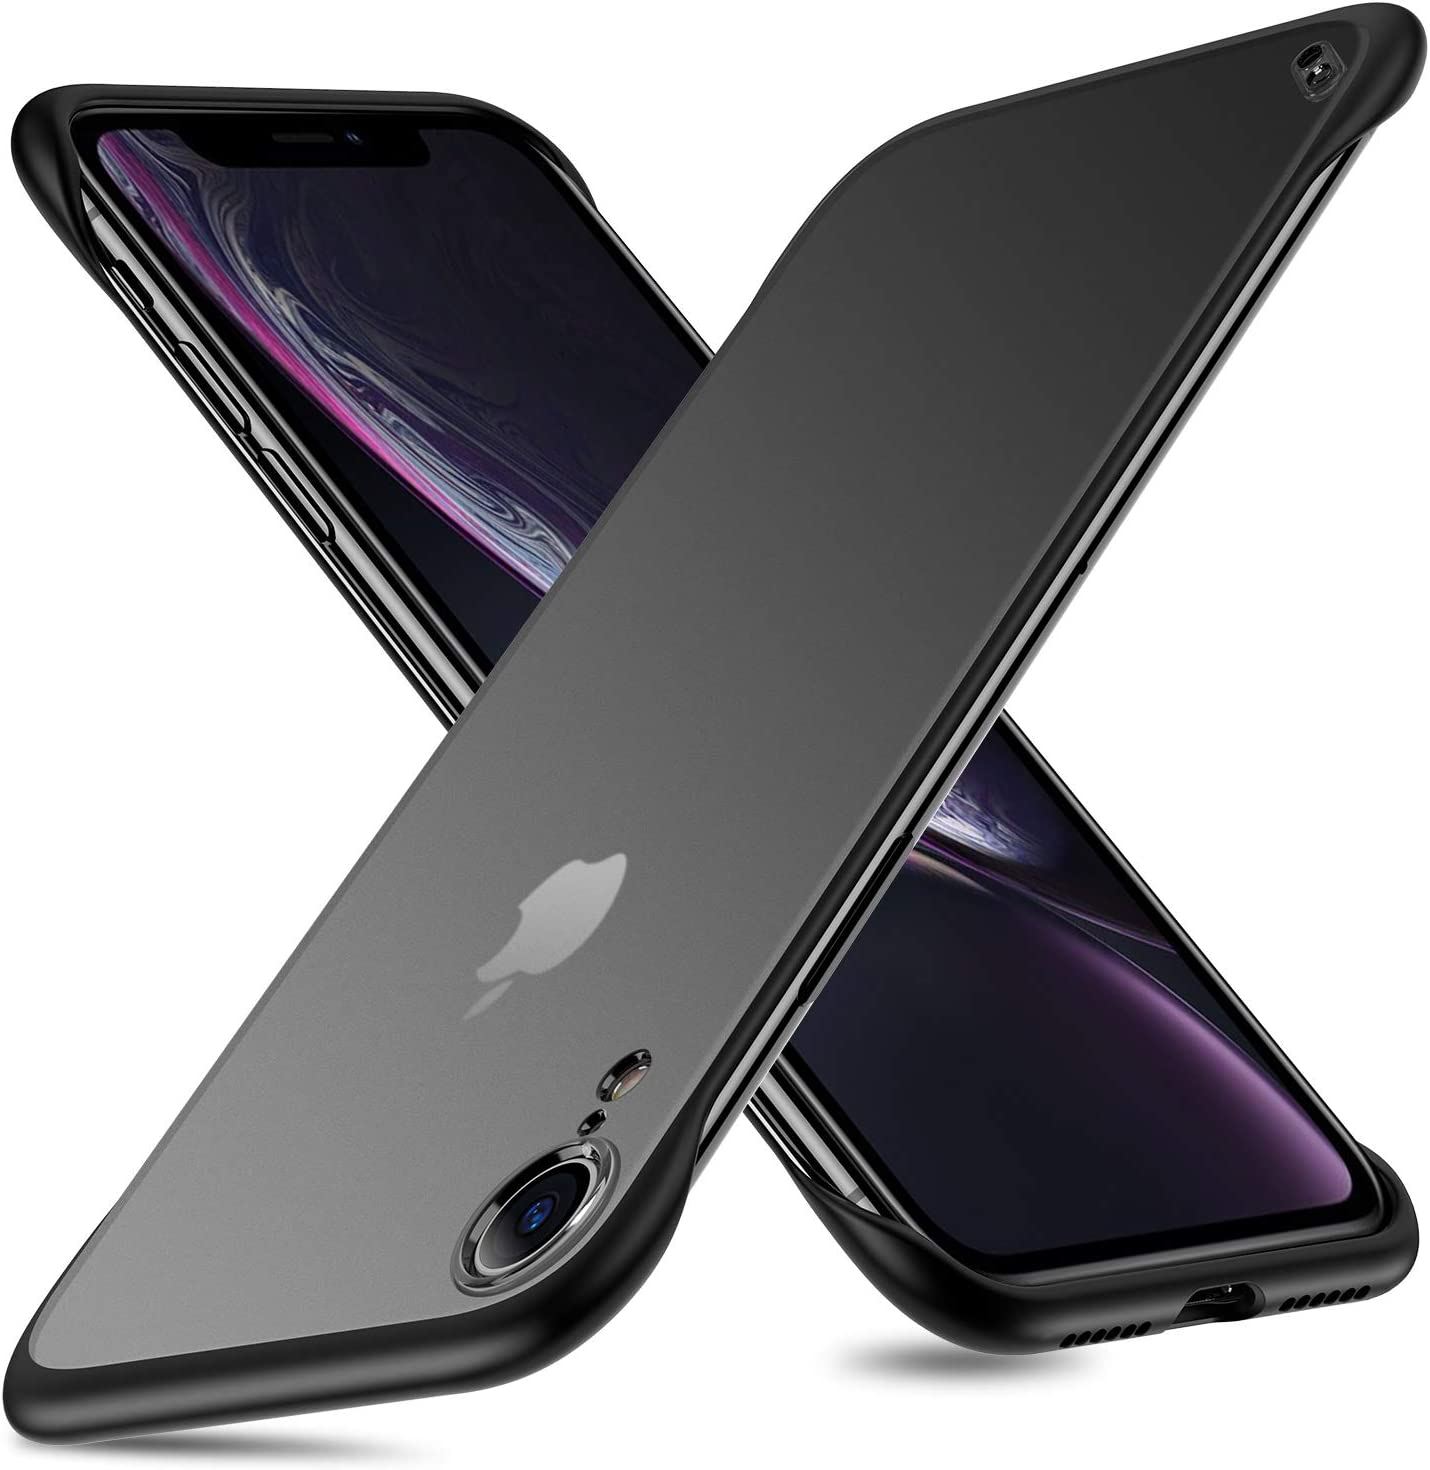 MSVII Slim Case for iPhone XR, Frameless iPhone XR Cases Translucent Matte Texture Hard PC Back Panel TPU Shockproof Bumper Corners Protective for iPhone XR 6.1 Inch Black